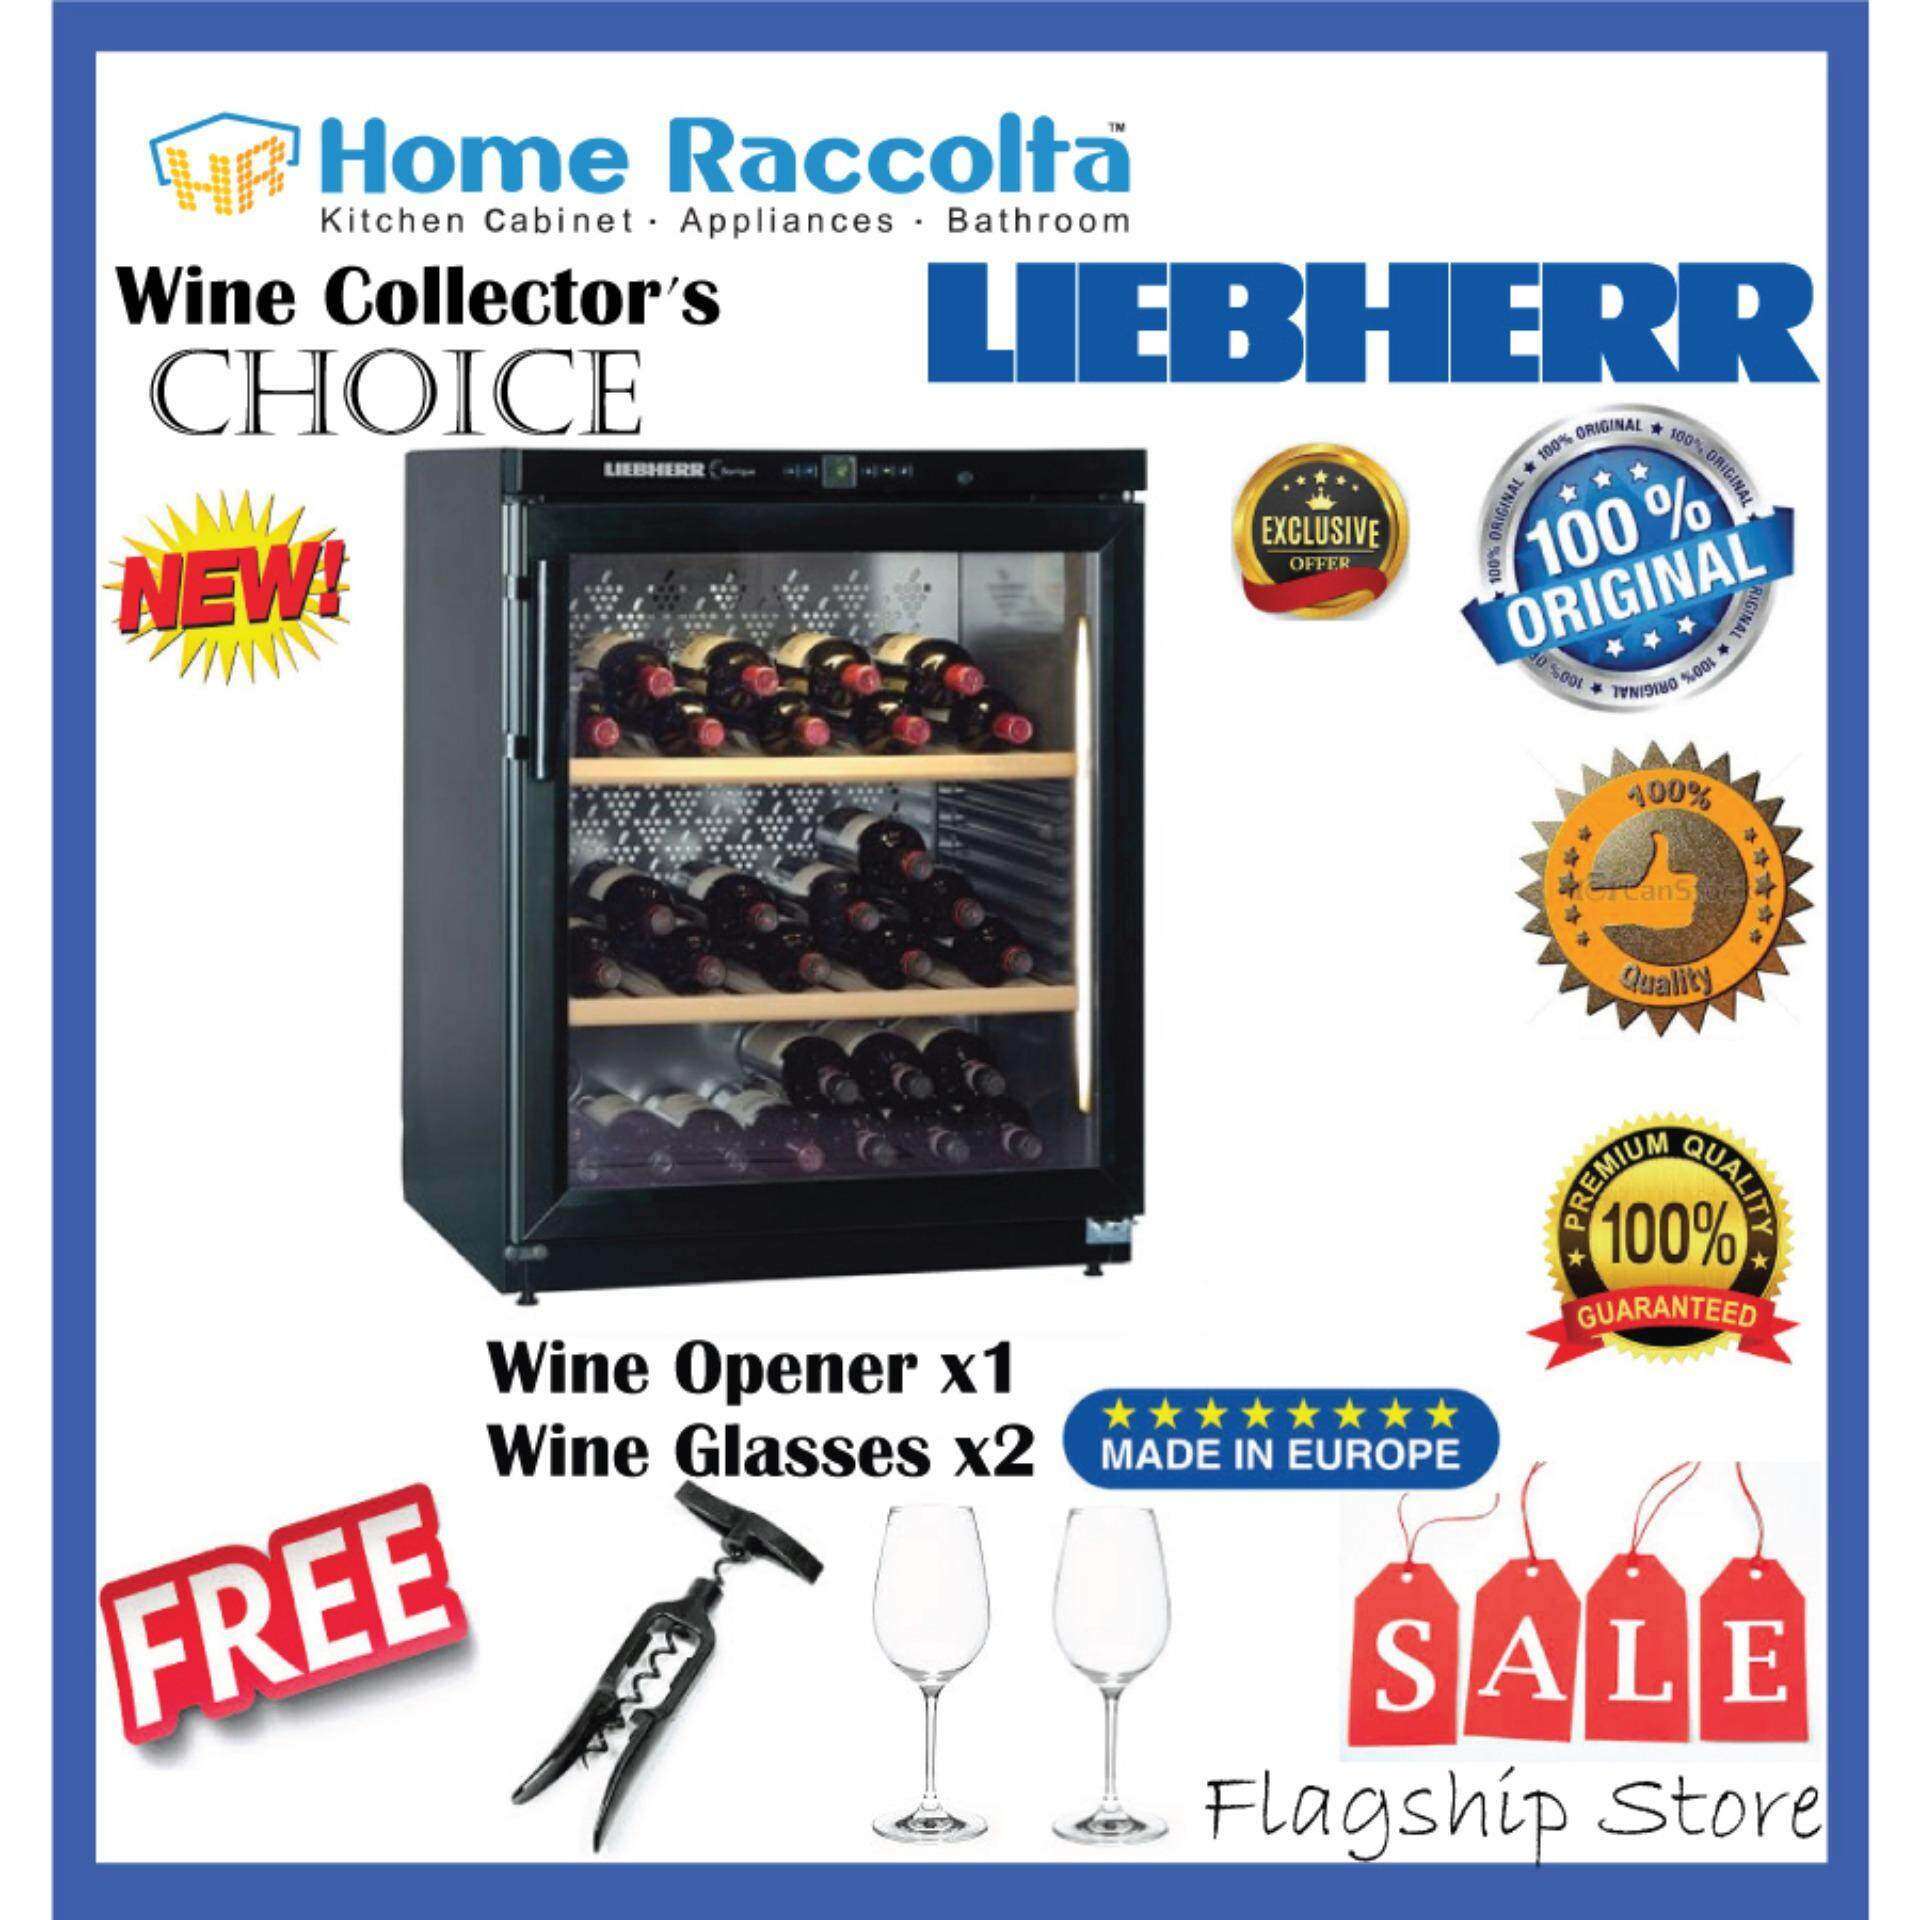 Liebherr Barrique Wine Chiller Wkb 1712 Barrique Wine Cellar Wkb1712 (60bottles) By Home Raccolta.